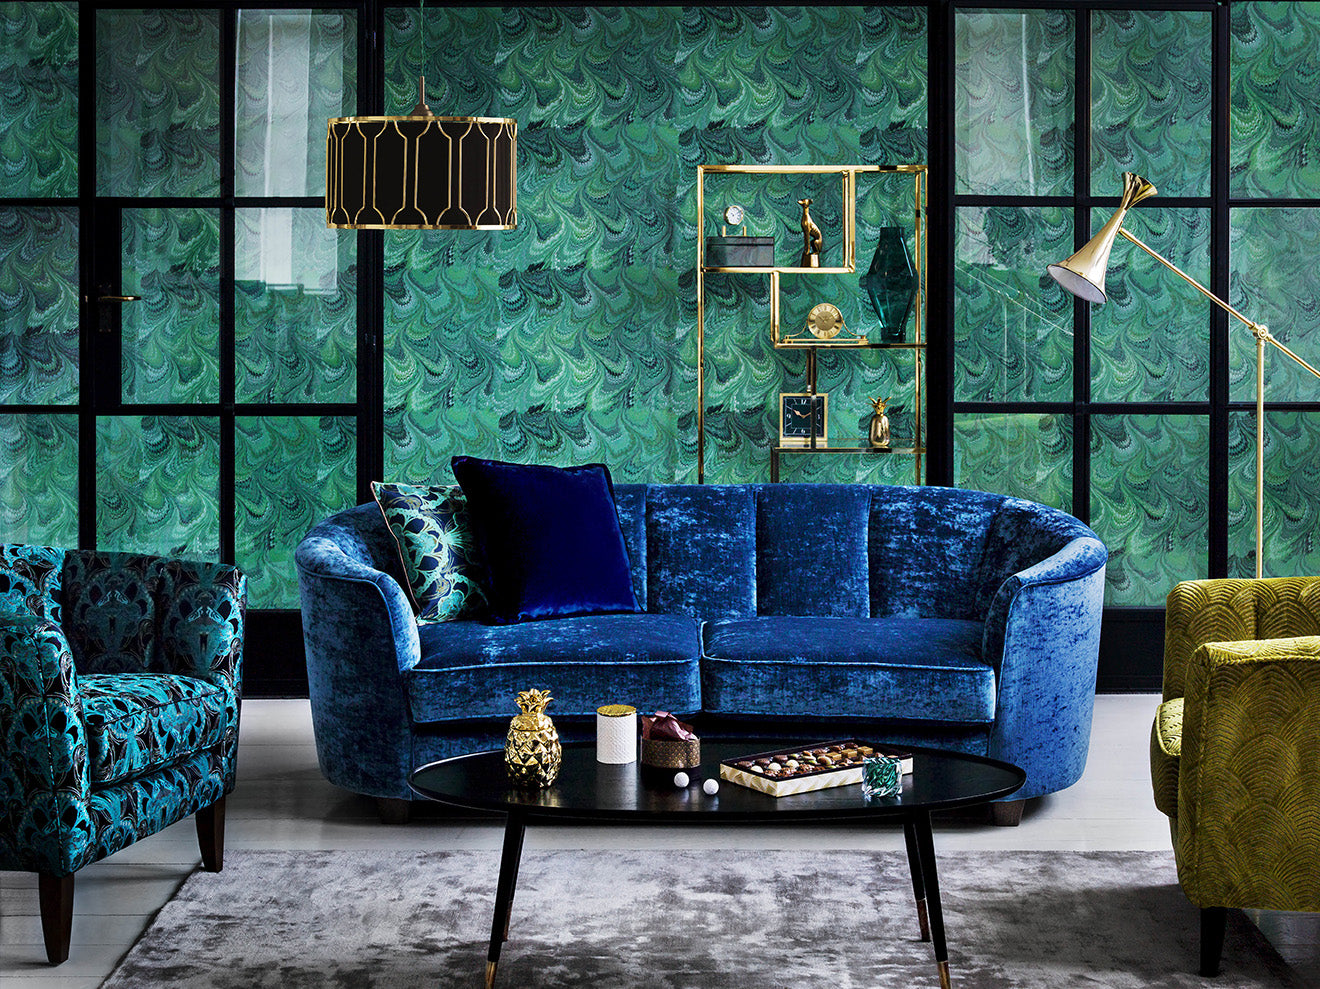 Marks and Spencer Home new season collection blue sofa and green wallpaper